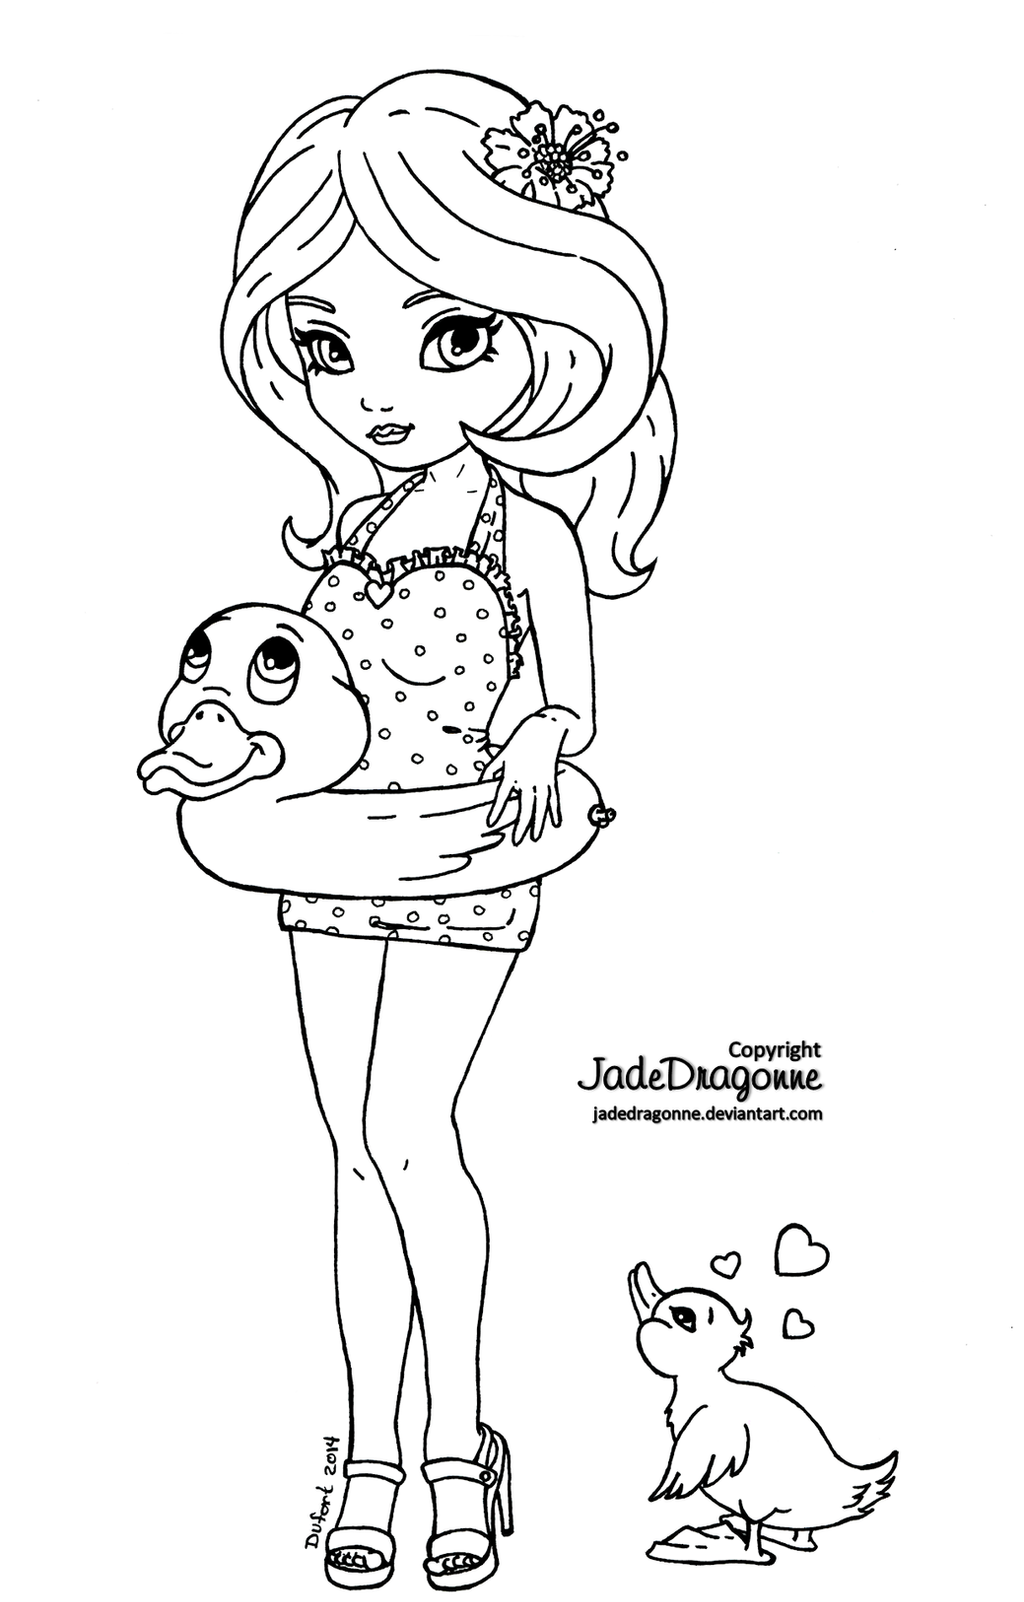 Rubber Duck Pin Up Lineart By Jadedragonne On Deviantart Pin Up Coloring Pages Printable